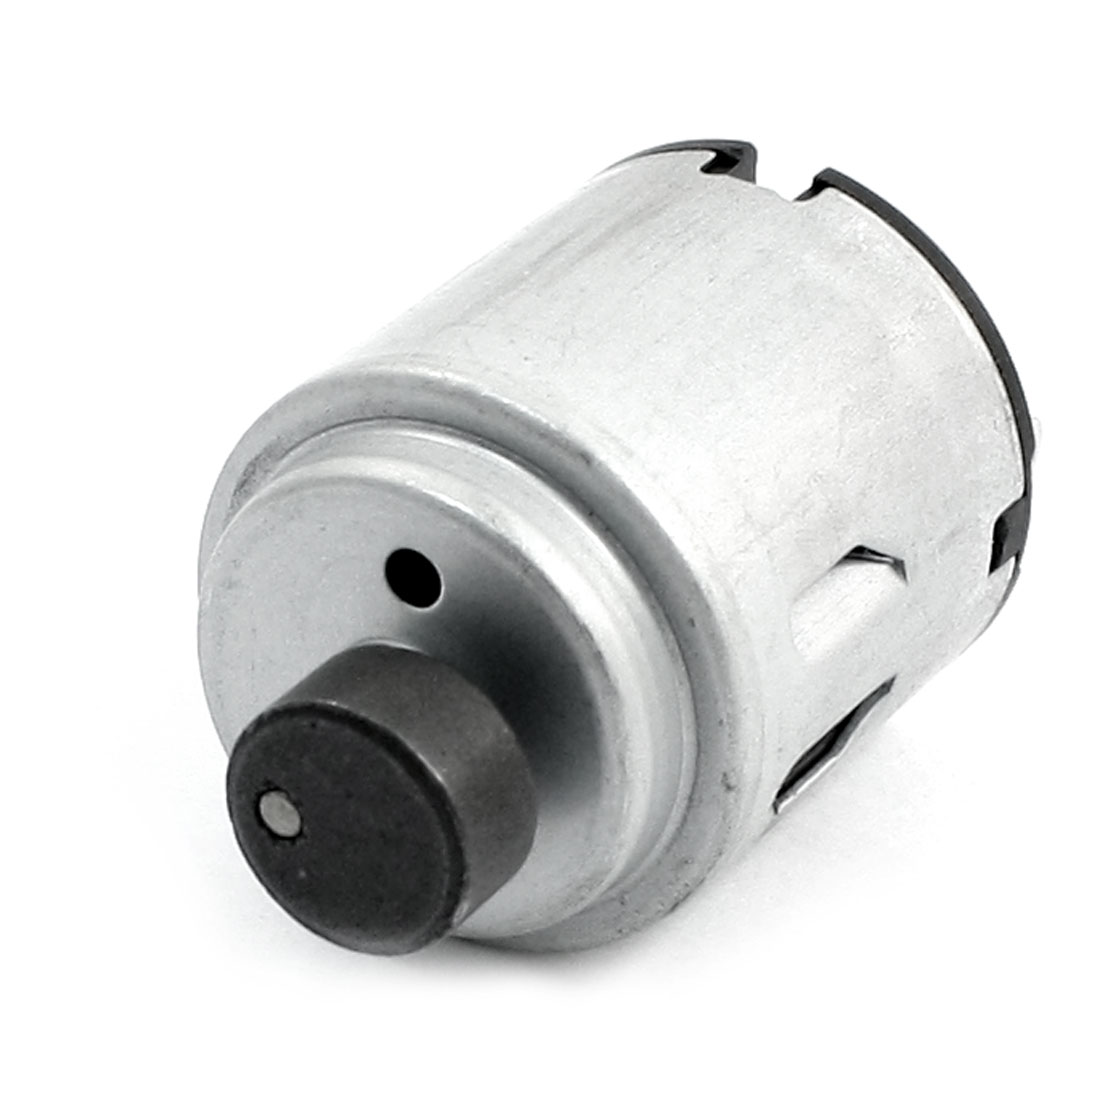 Round-Shaft-6900R-min-Speed-Micro-Vibrating-Vibration-Motor-DC-1-5-6V